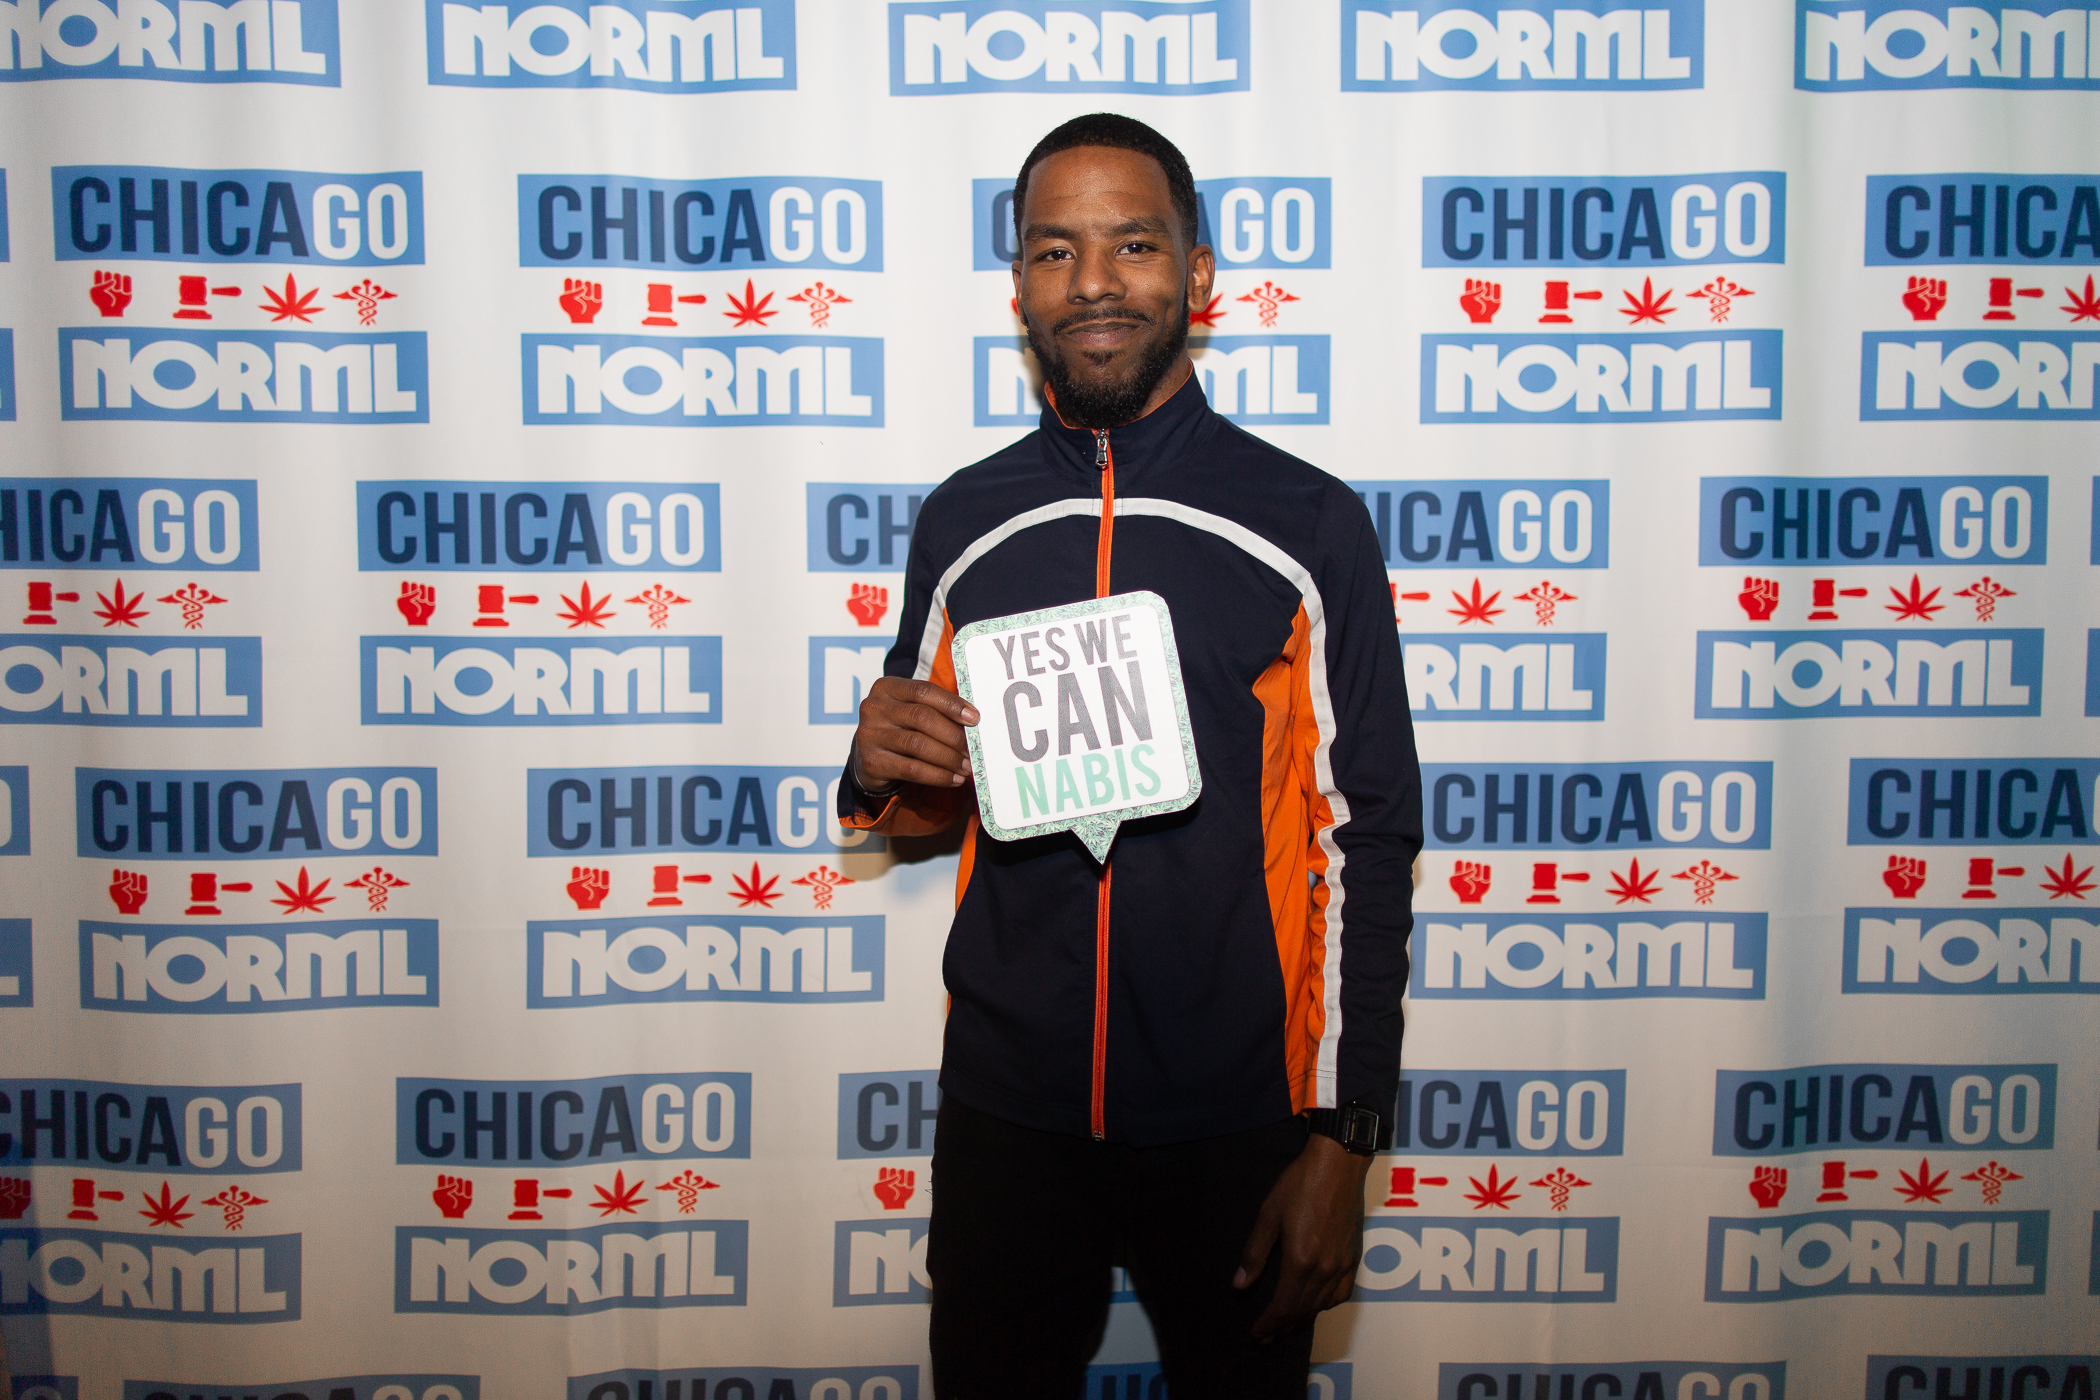 Copy of 20180420 - Chicago Norml-84.jpg